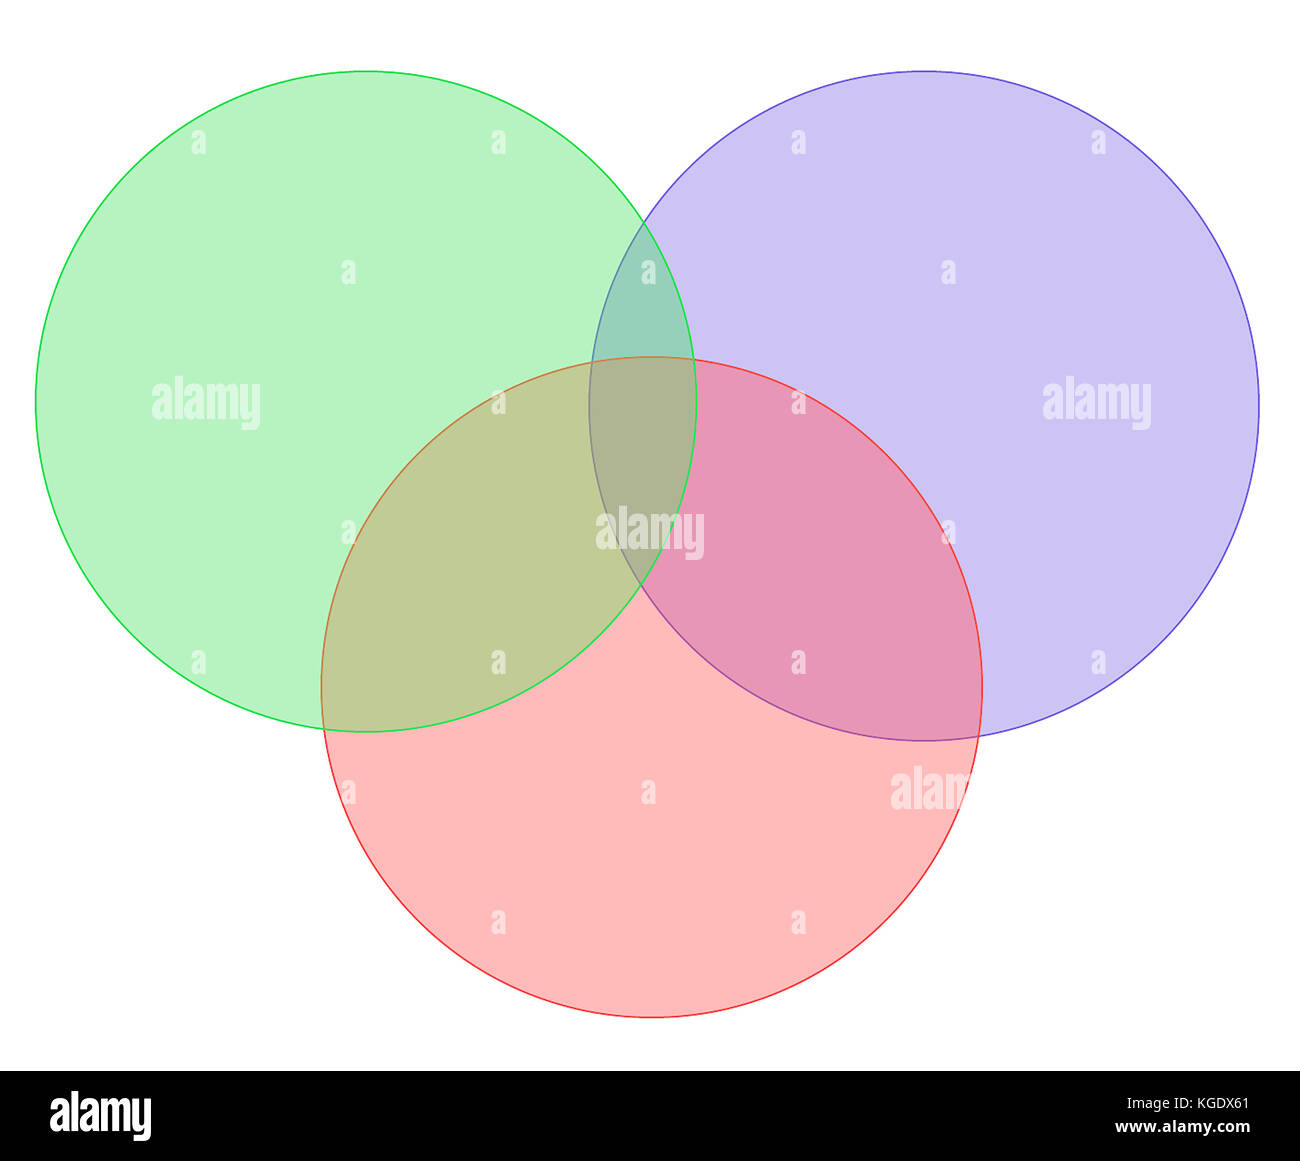 3 colored venn diagram on white background stock photo royalty 3 colored venn diagram on white background pooptronica Choice Image